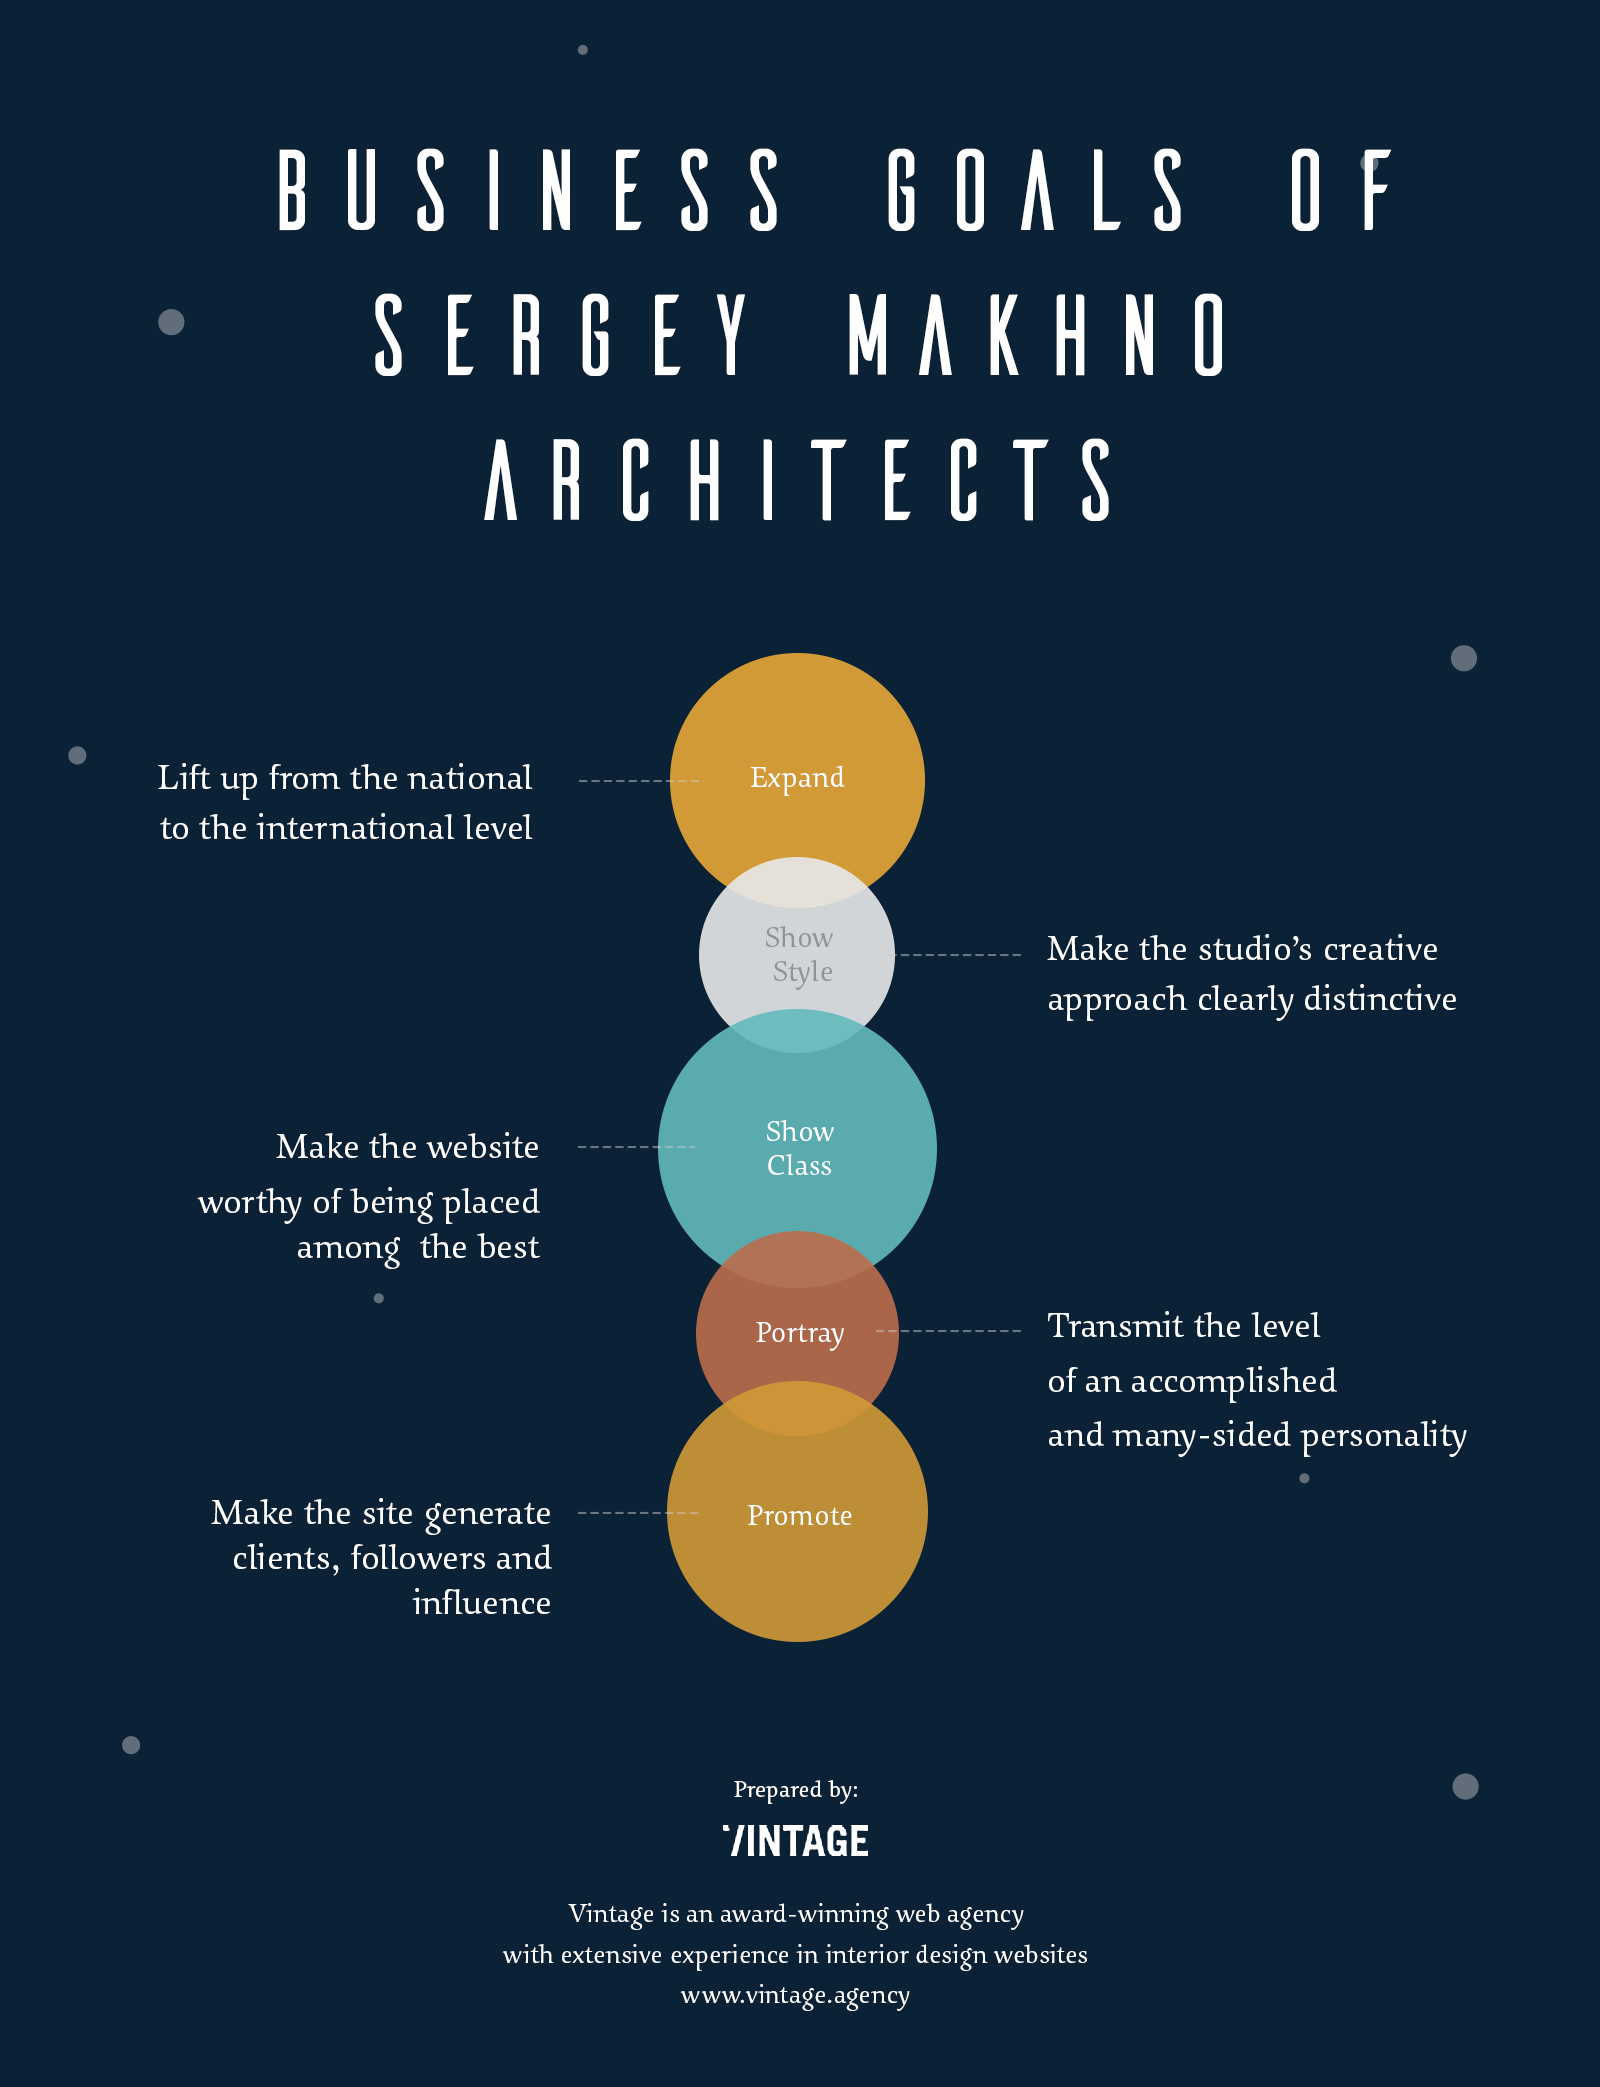 Sergey Makhno business goals